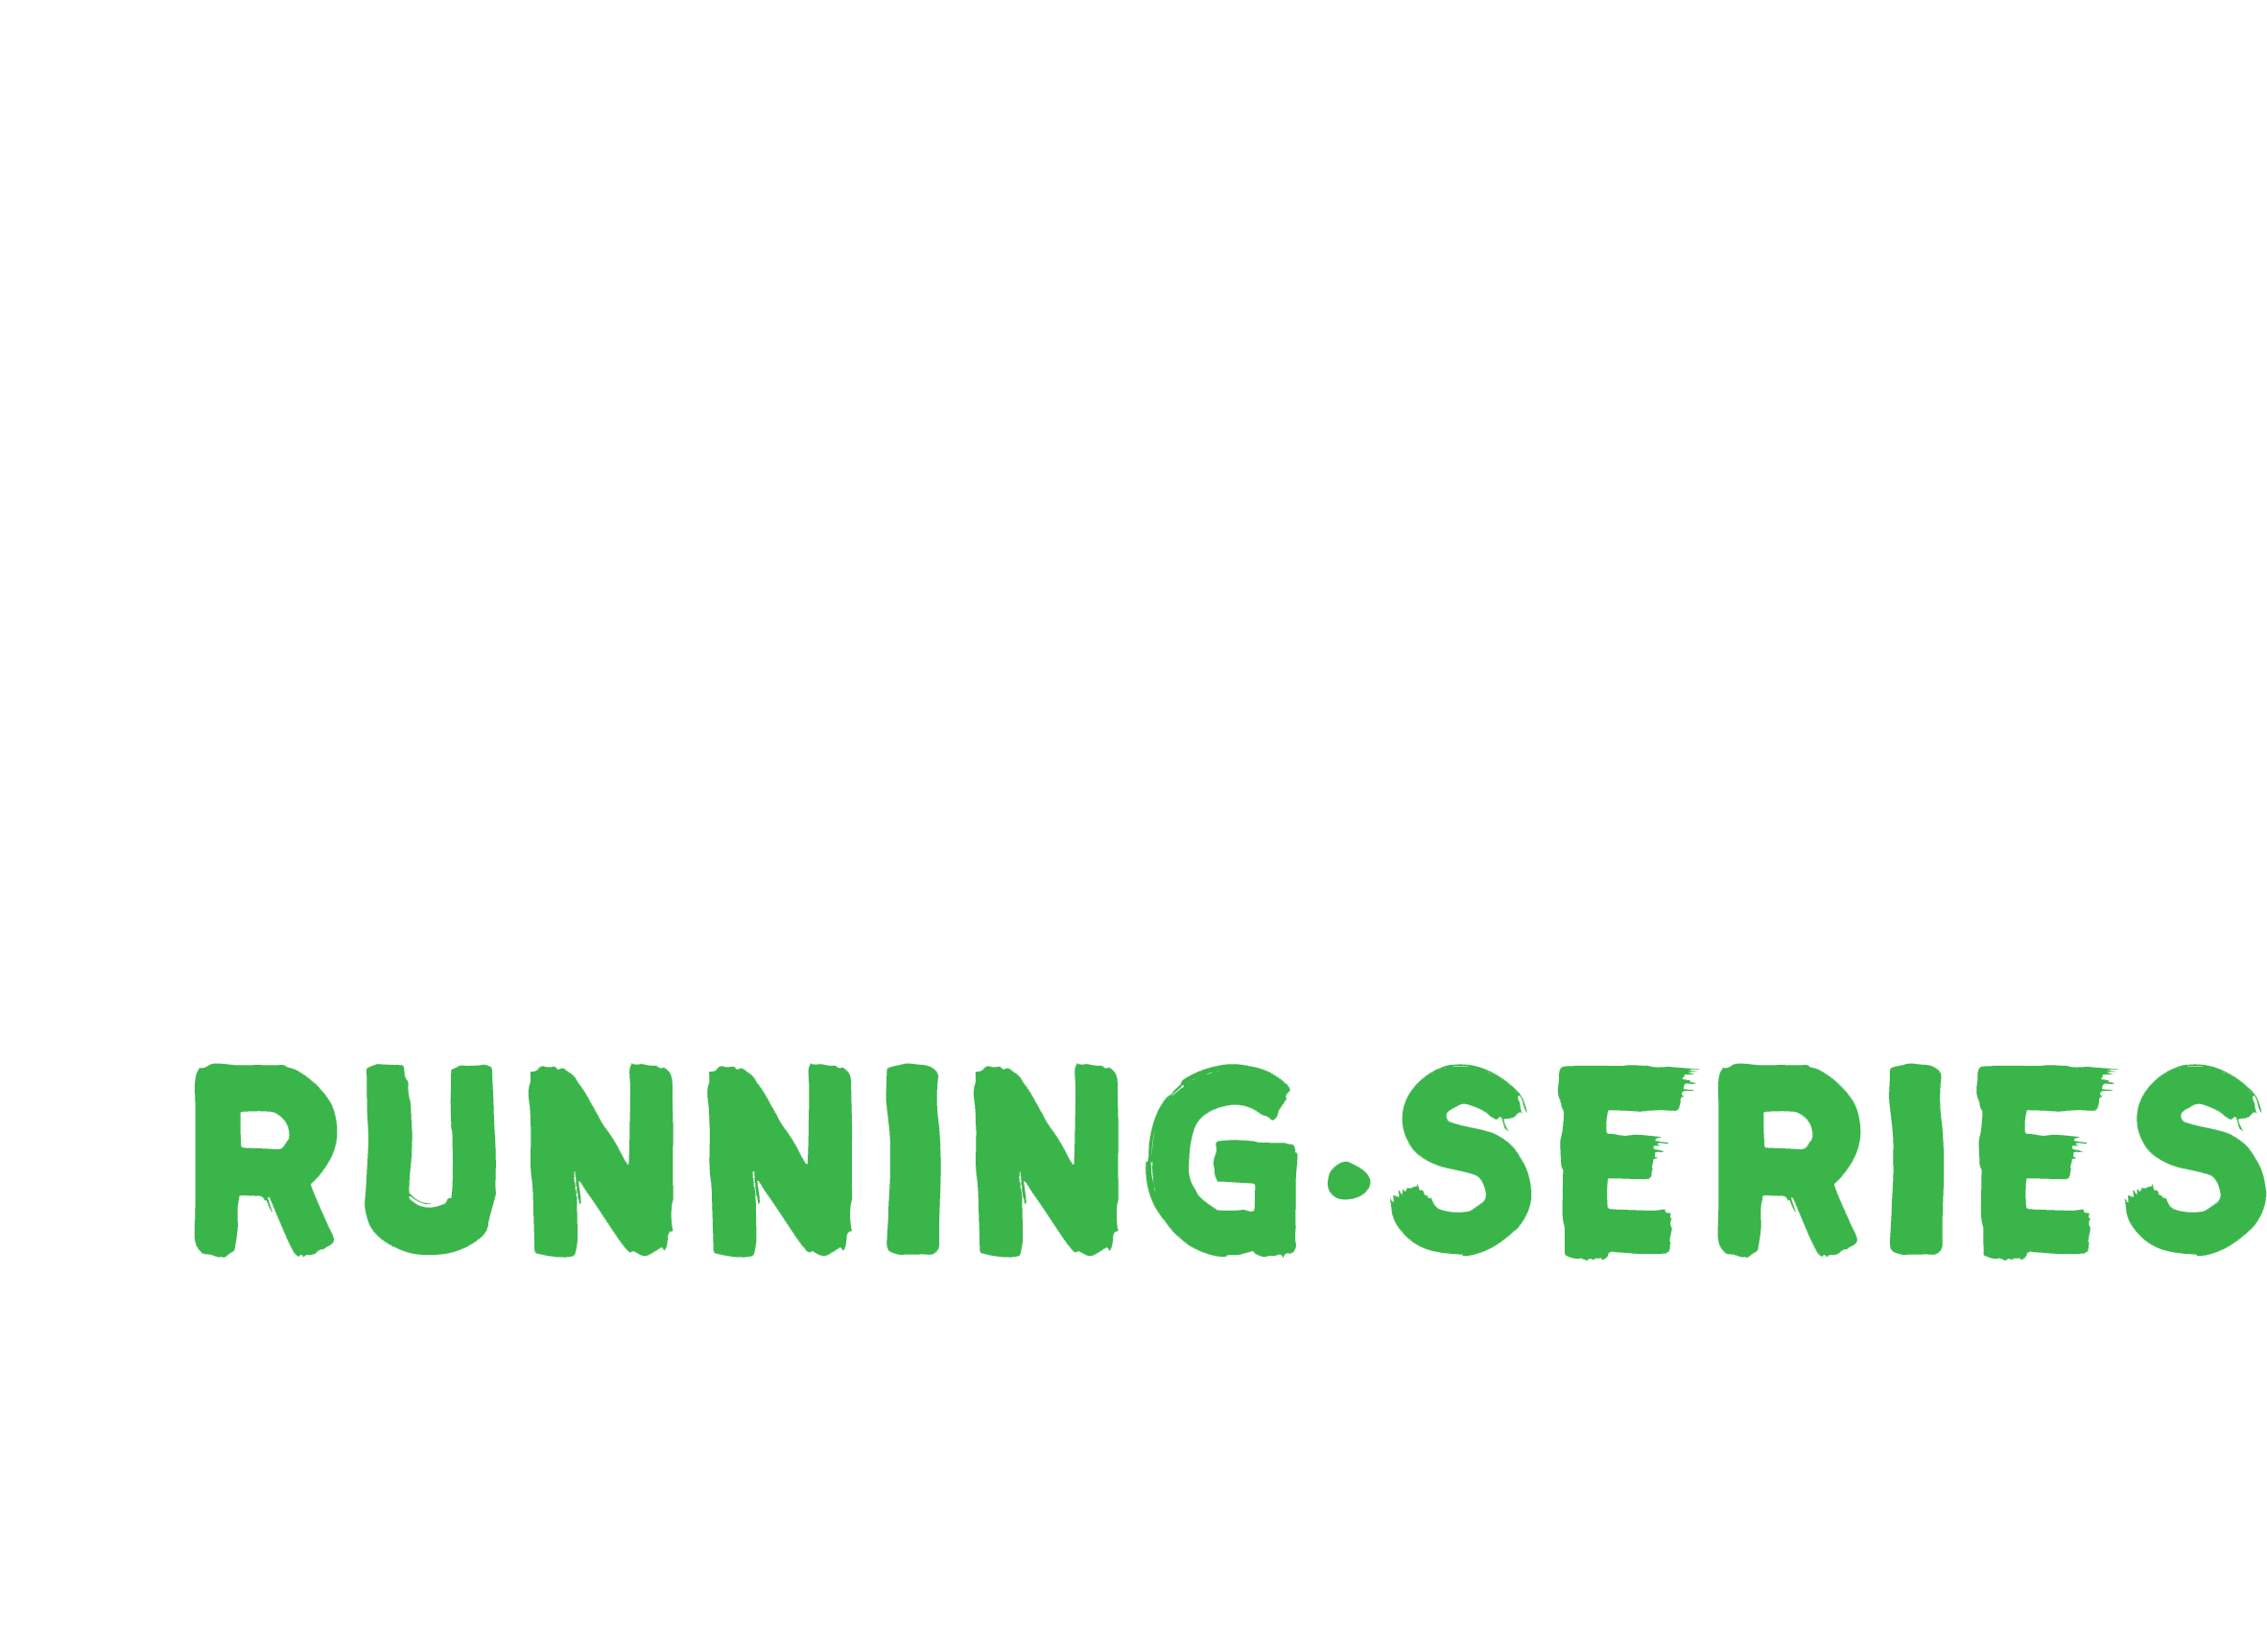 The Trail Running Series